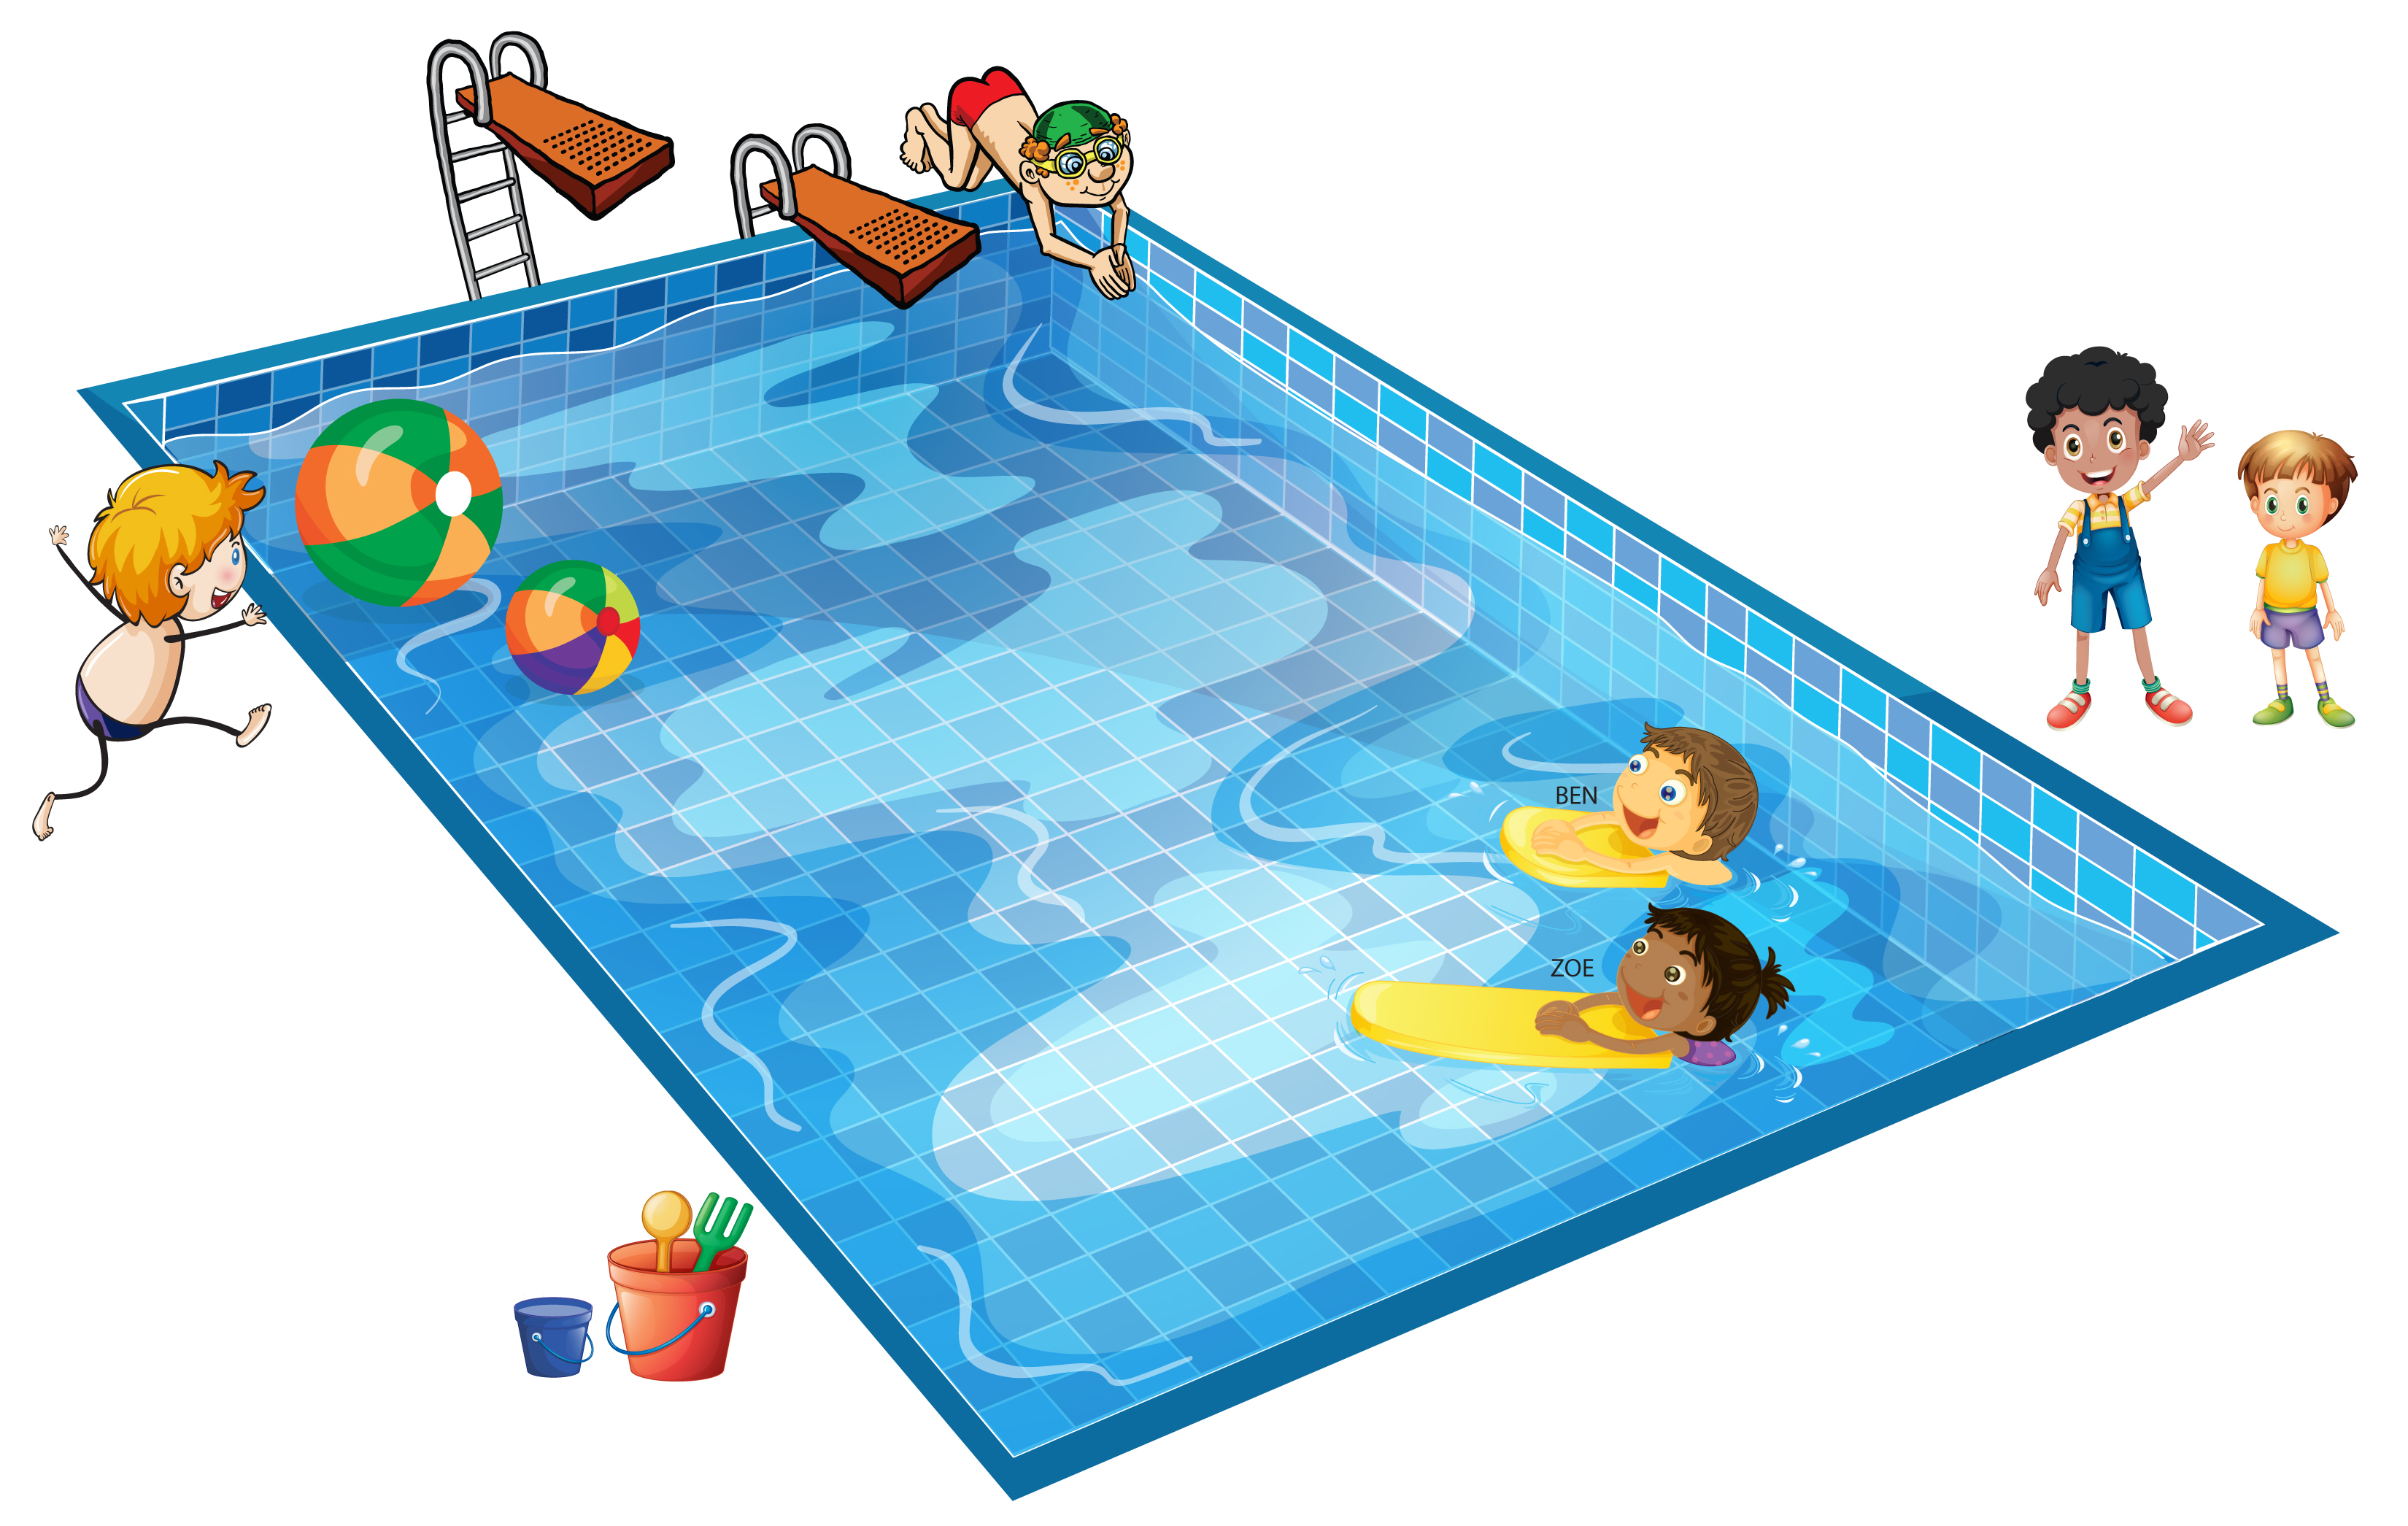 Hotel icon indoor pool clip art at clker-Hotel icon indoor pool clip art at clker vector clip art-10